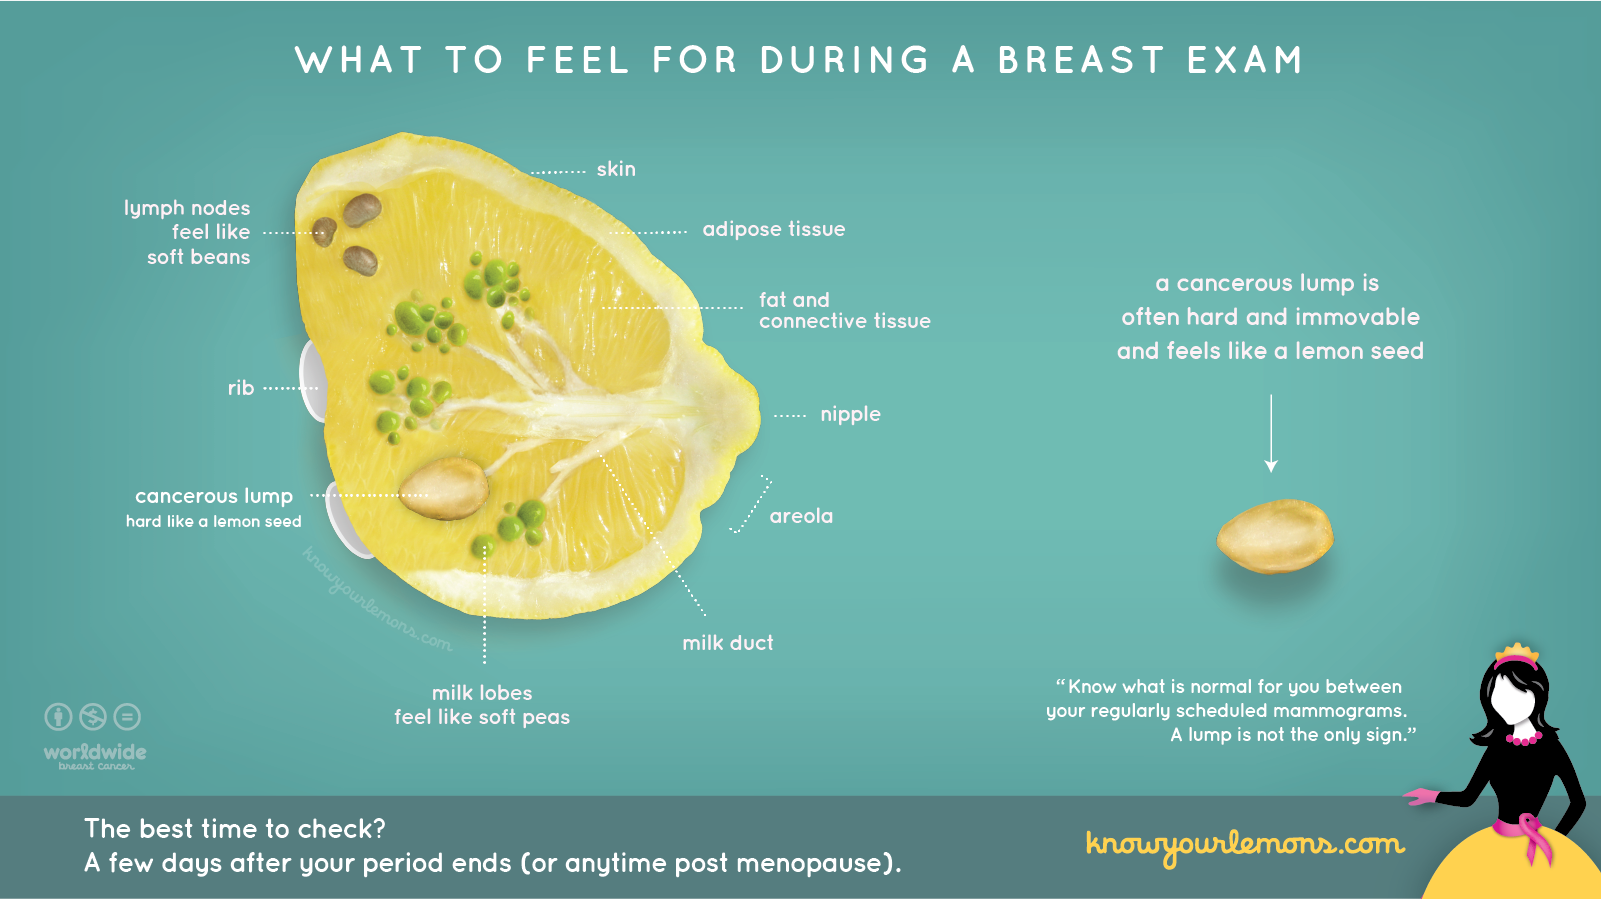 What to feel for during a breast exam